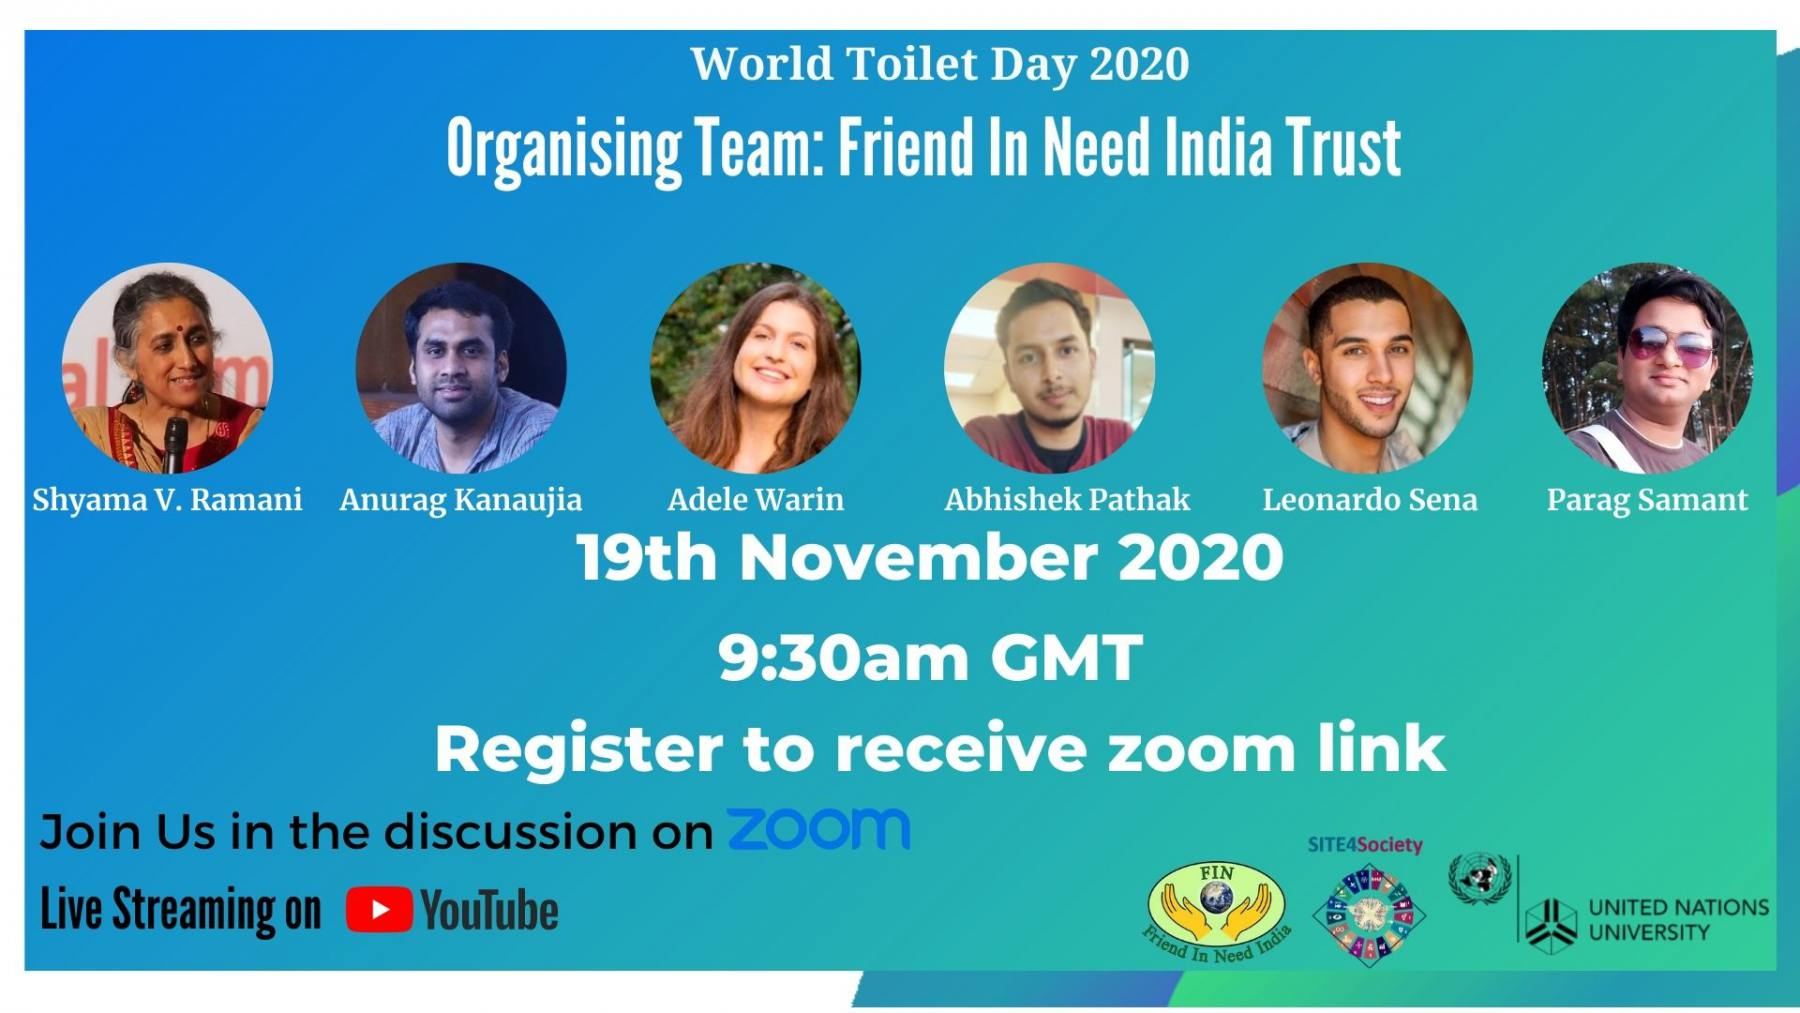 World Toilet Day 2020 Program Posters